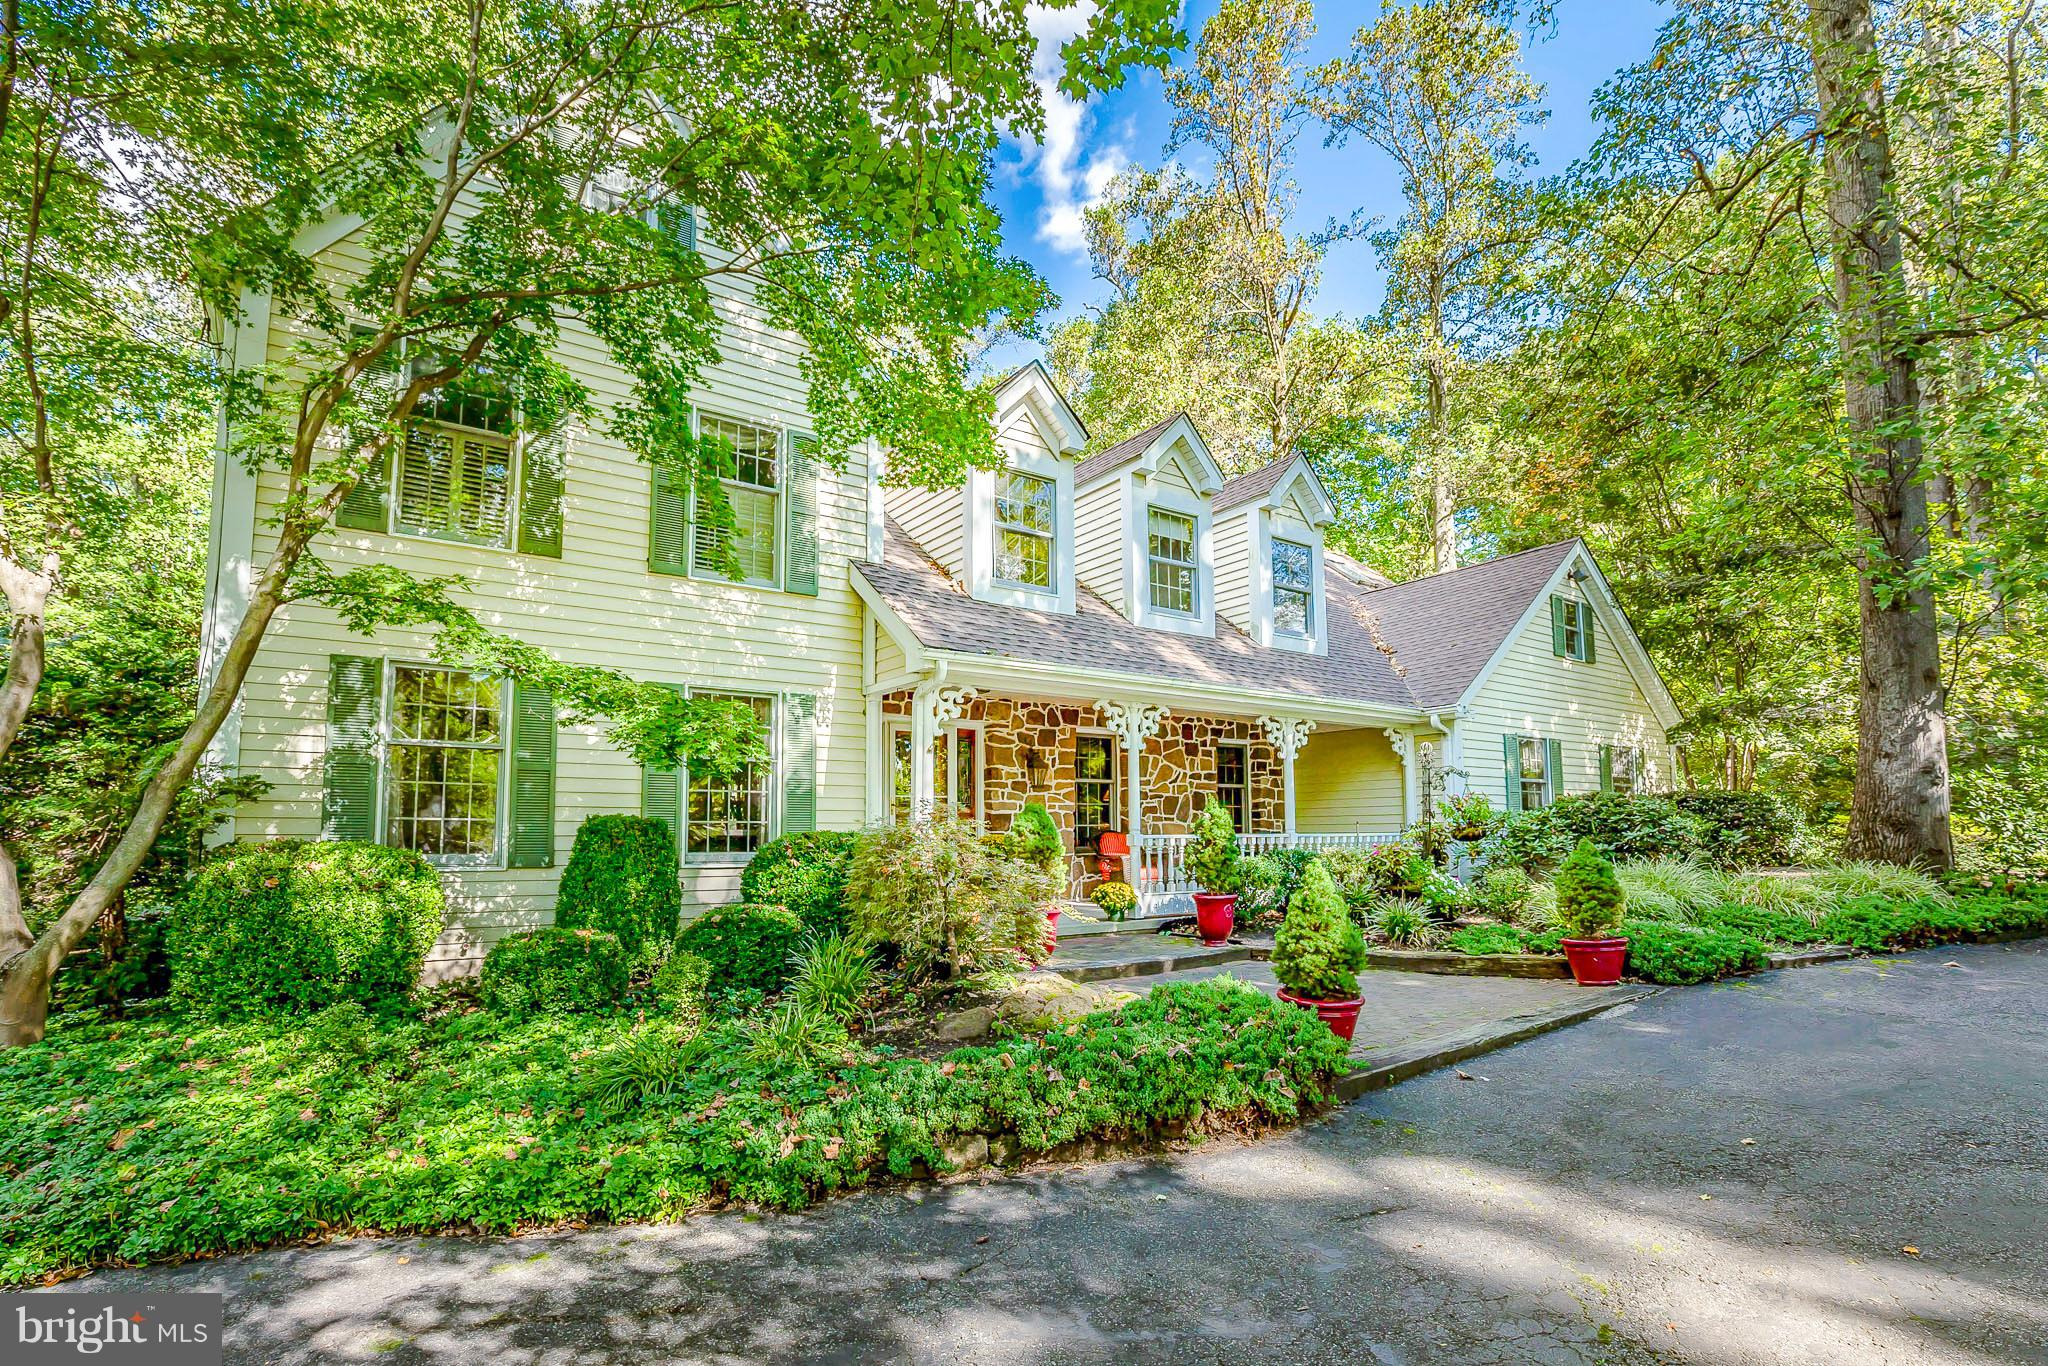 77 WINDING WAY, MICKLETON, NJ 08056